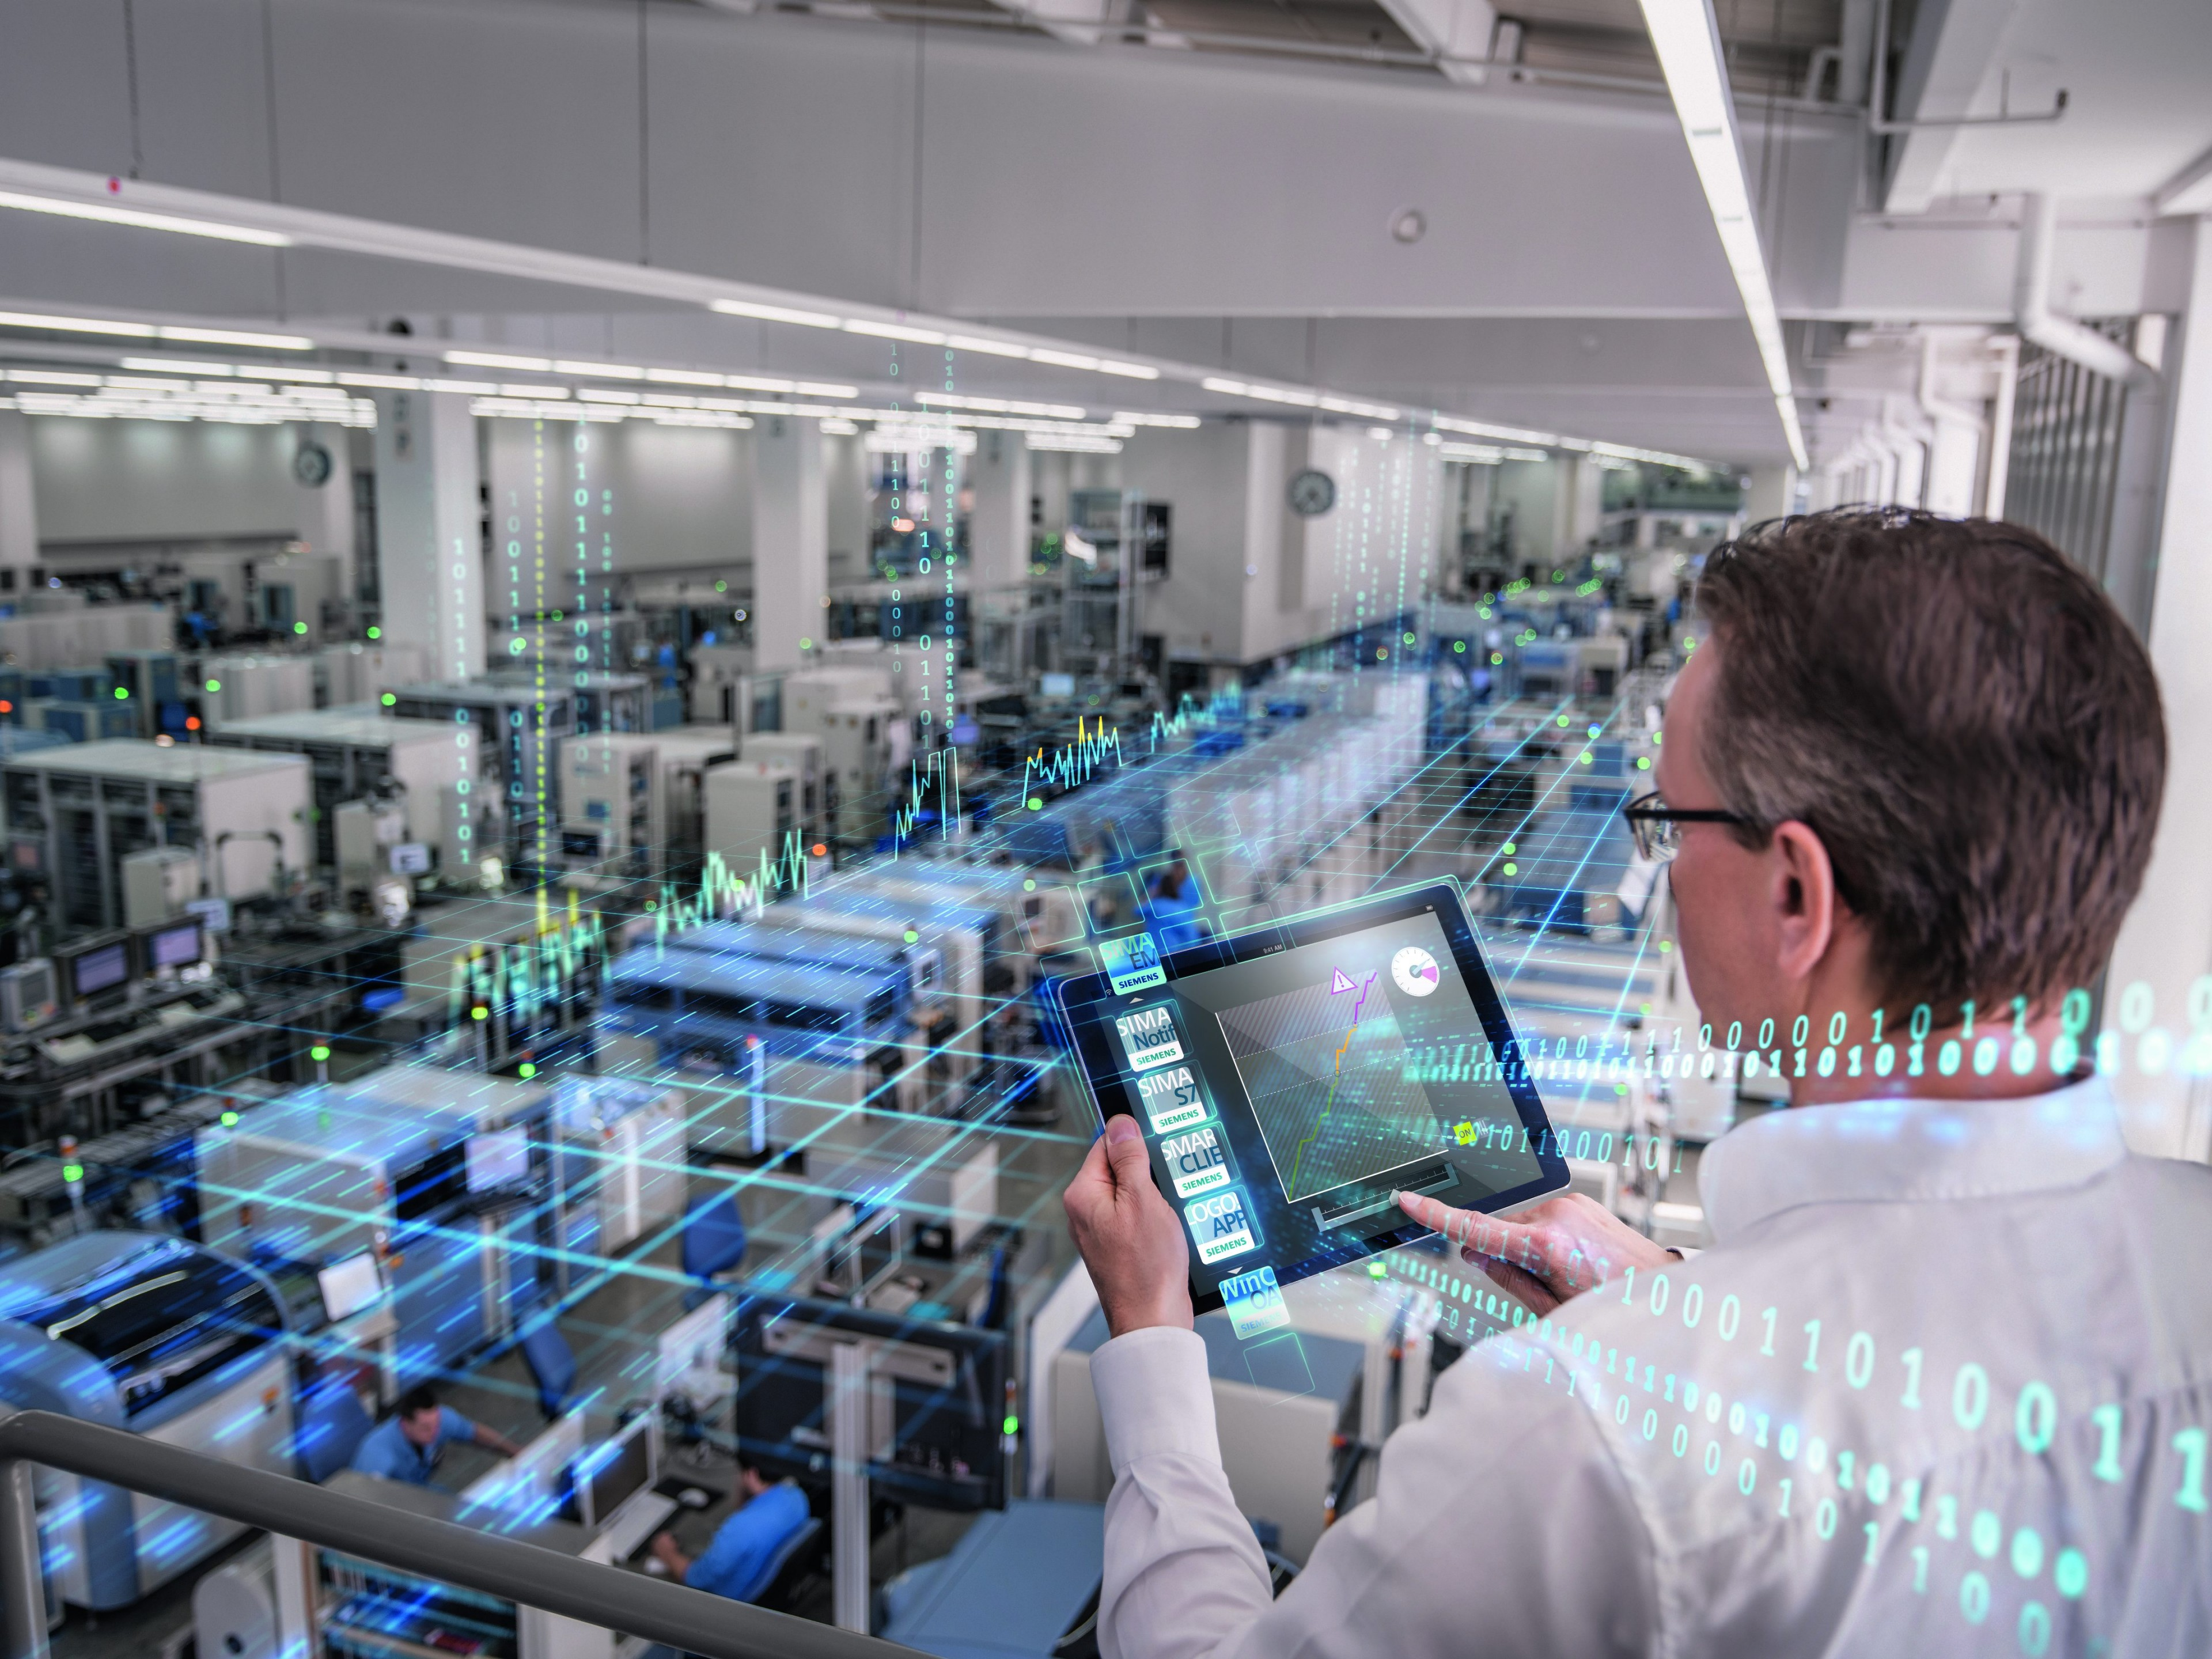 Operator Control and Monitoring Systems   Industrial